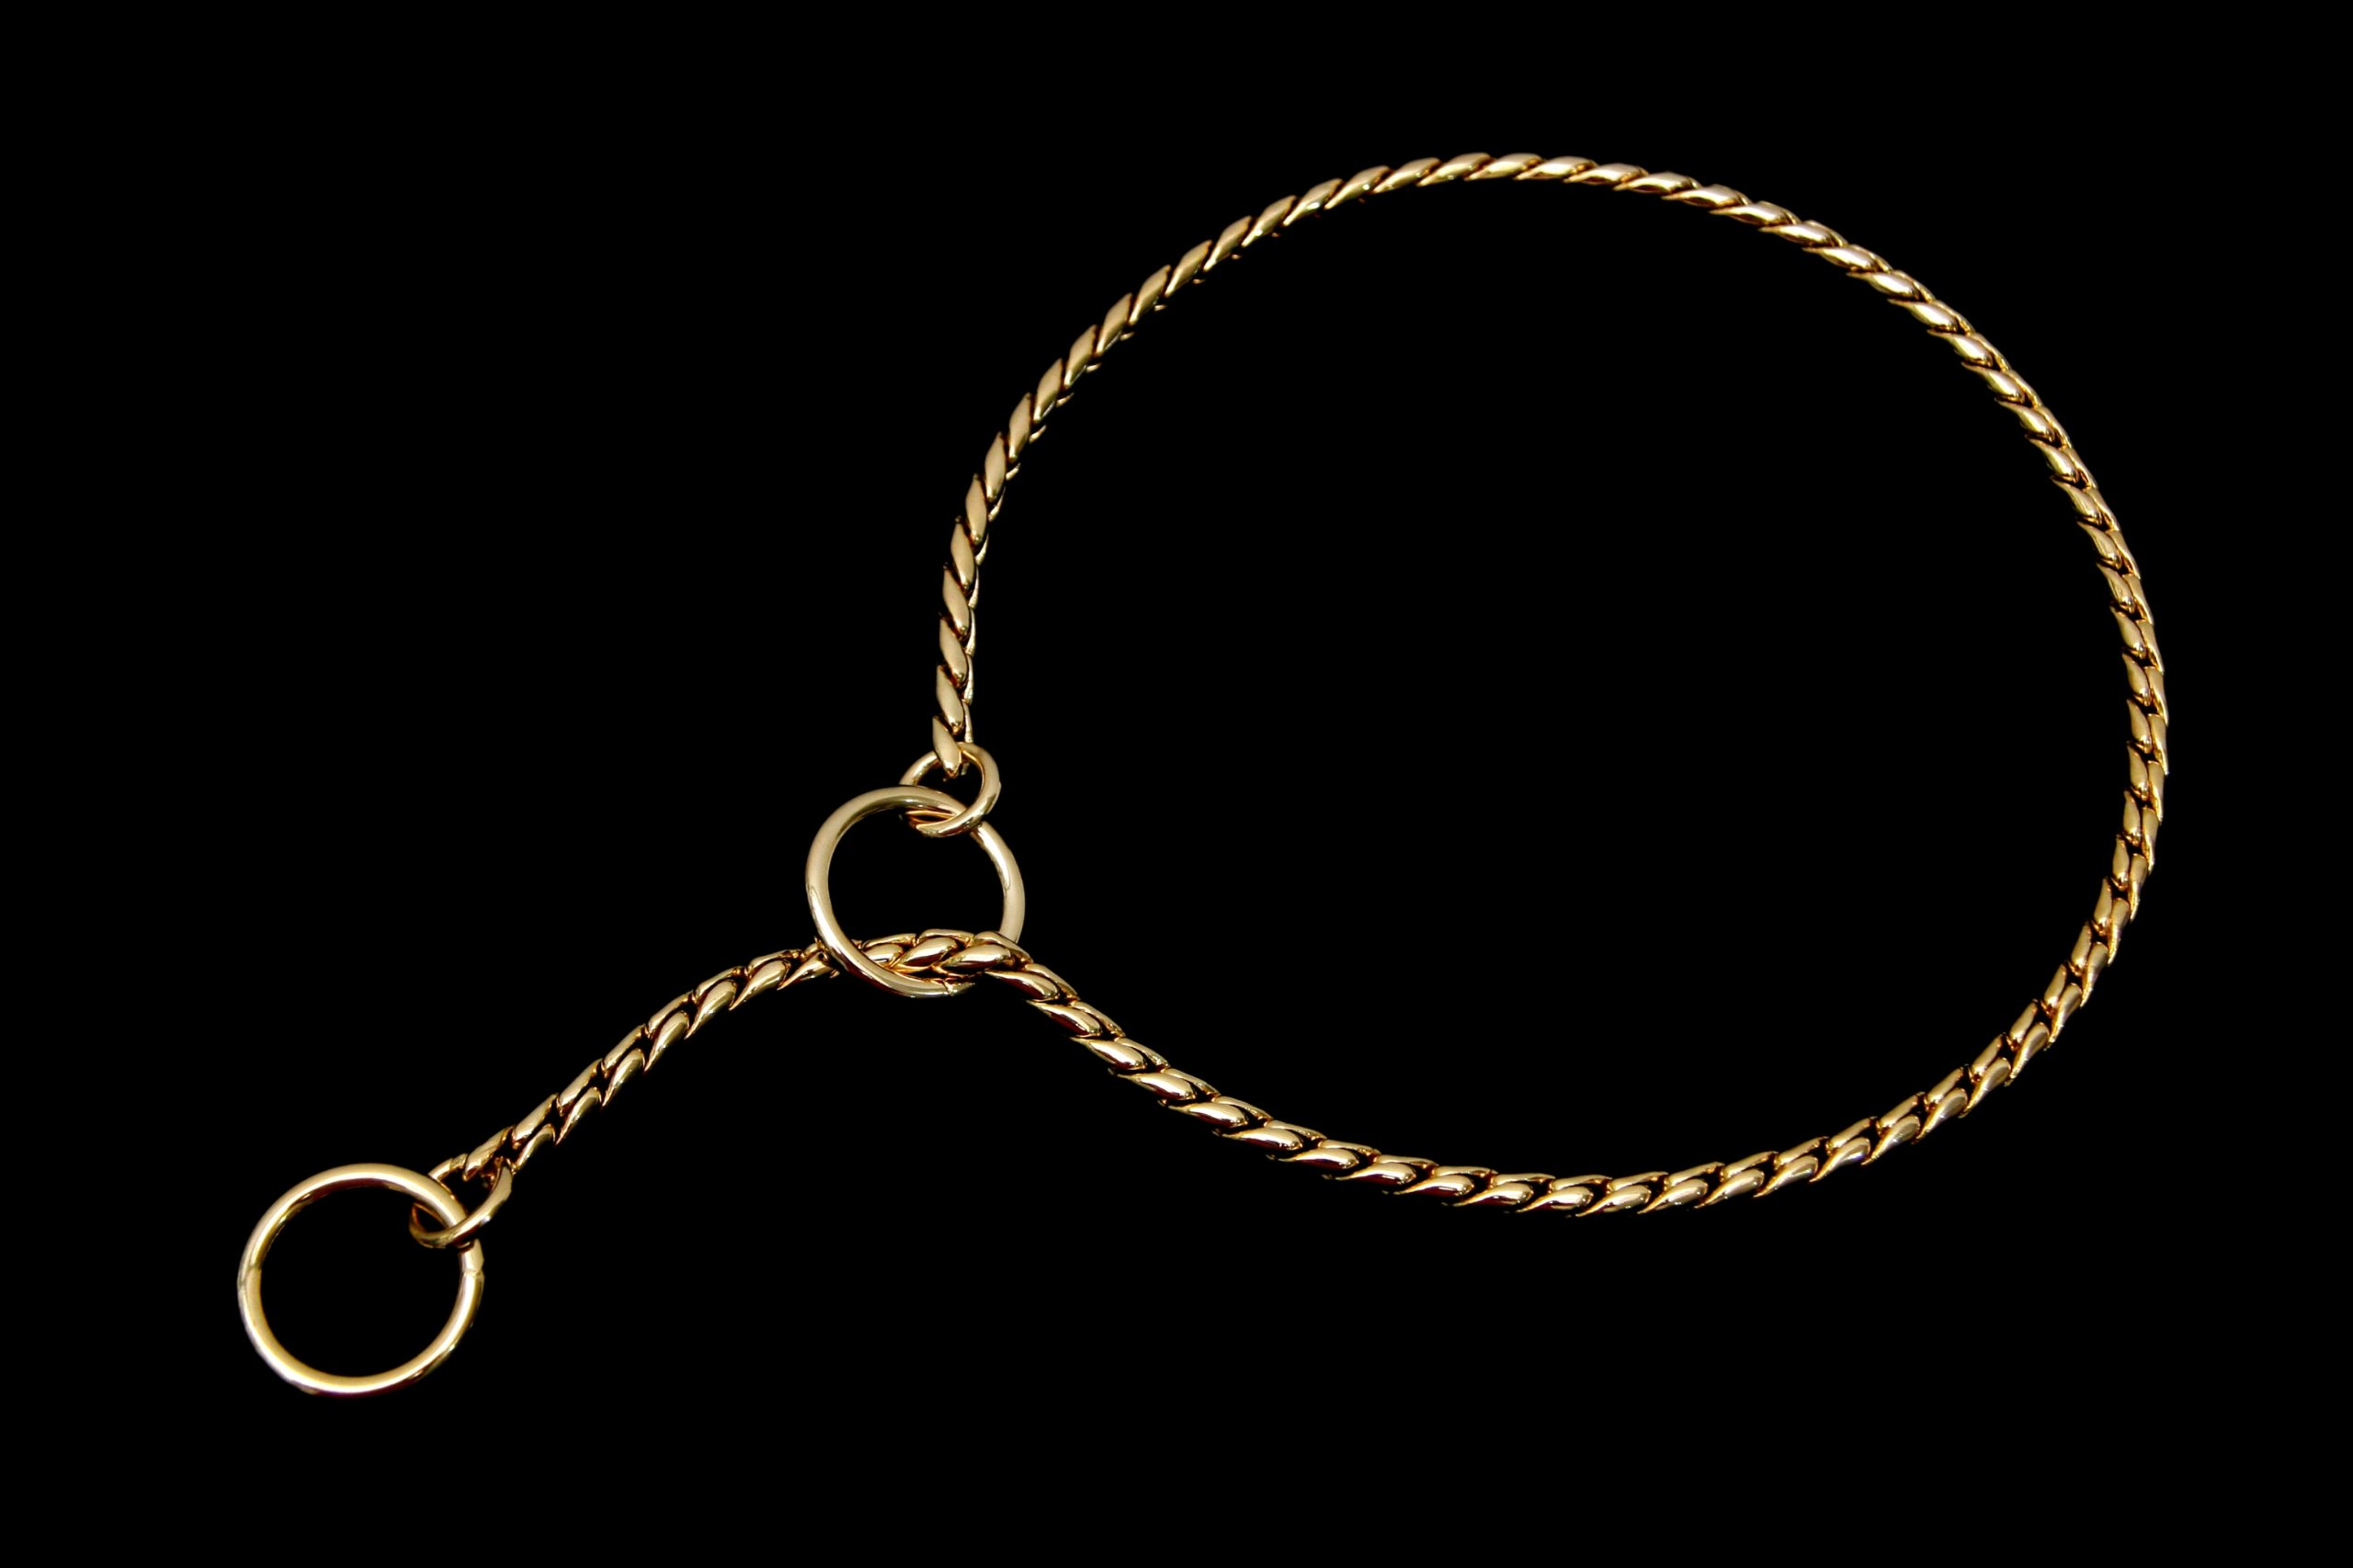 Alvalley Snake Show Chain for Dogs Thickness 5,5 mm x 22 in